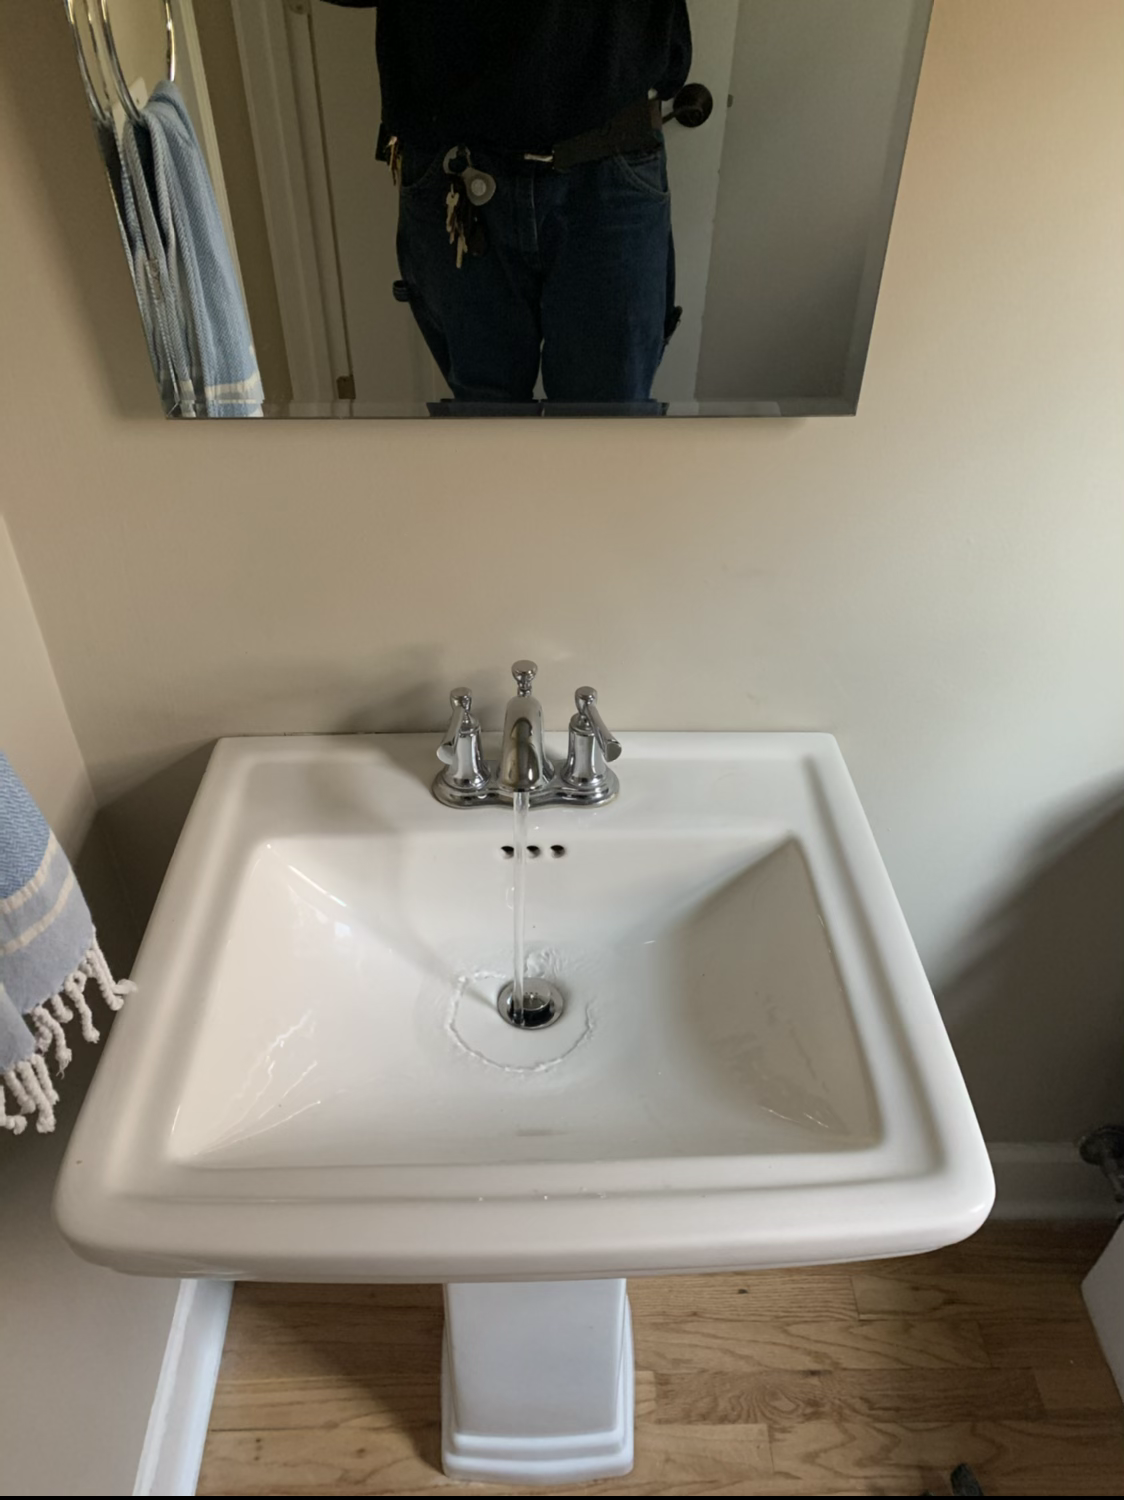 Lavatory faucet replacement